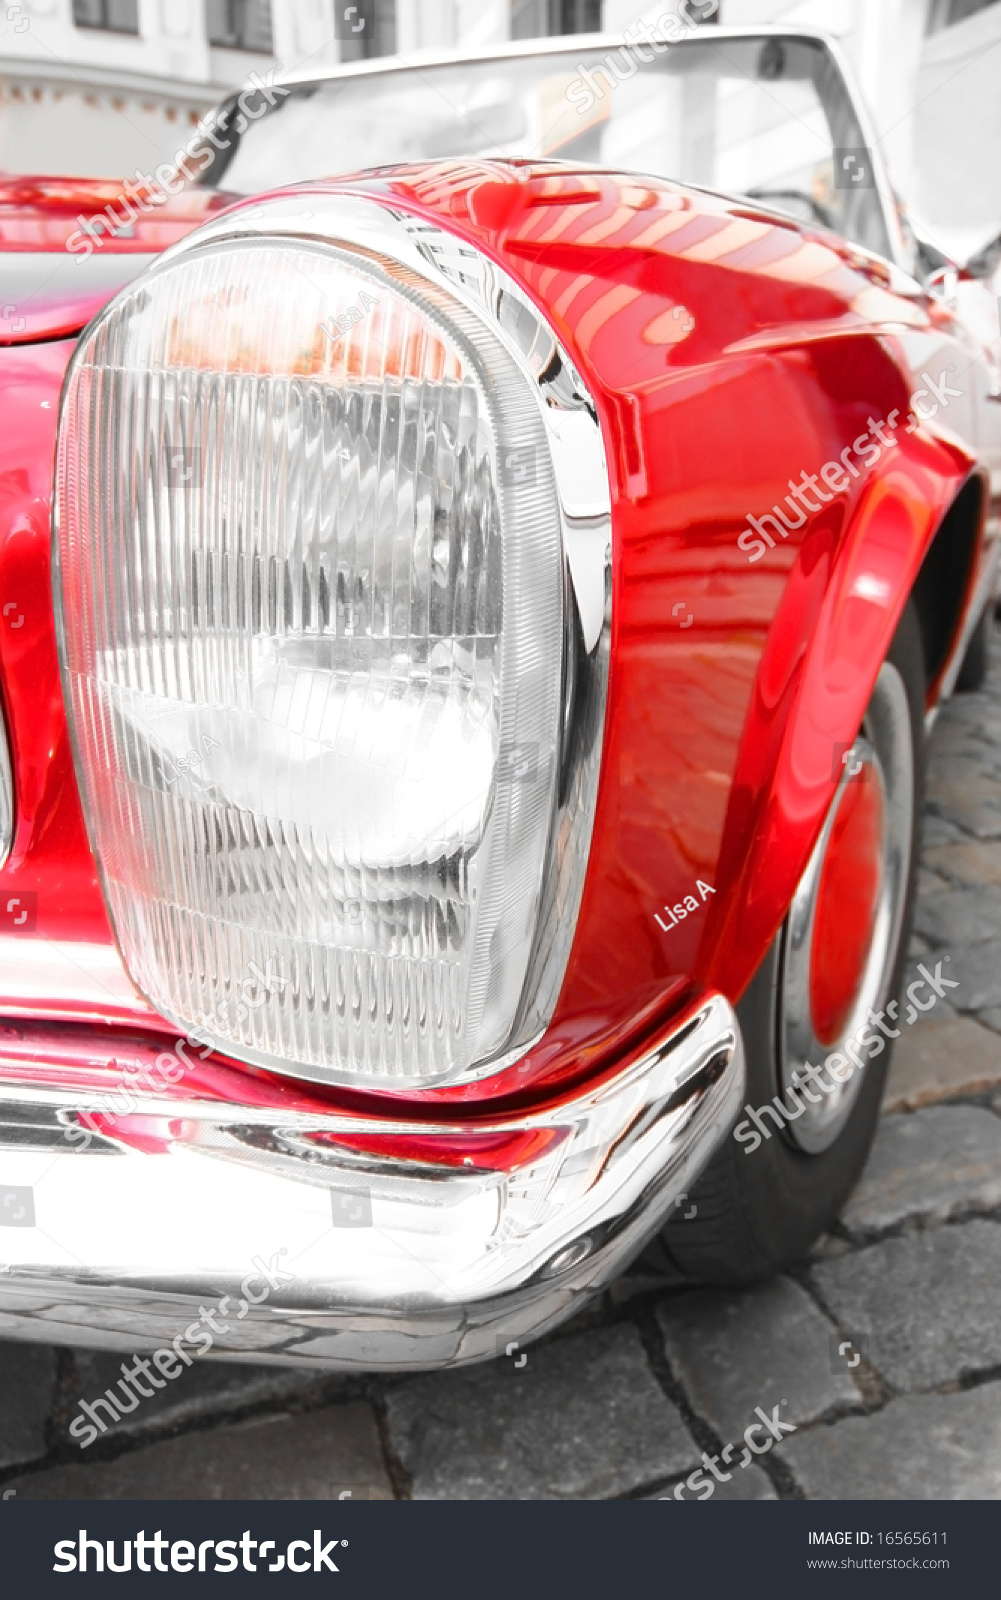 Old-Fashioned Luxury Red Car Stock Photo 16565611